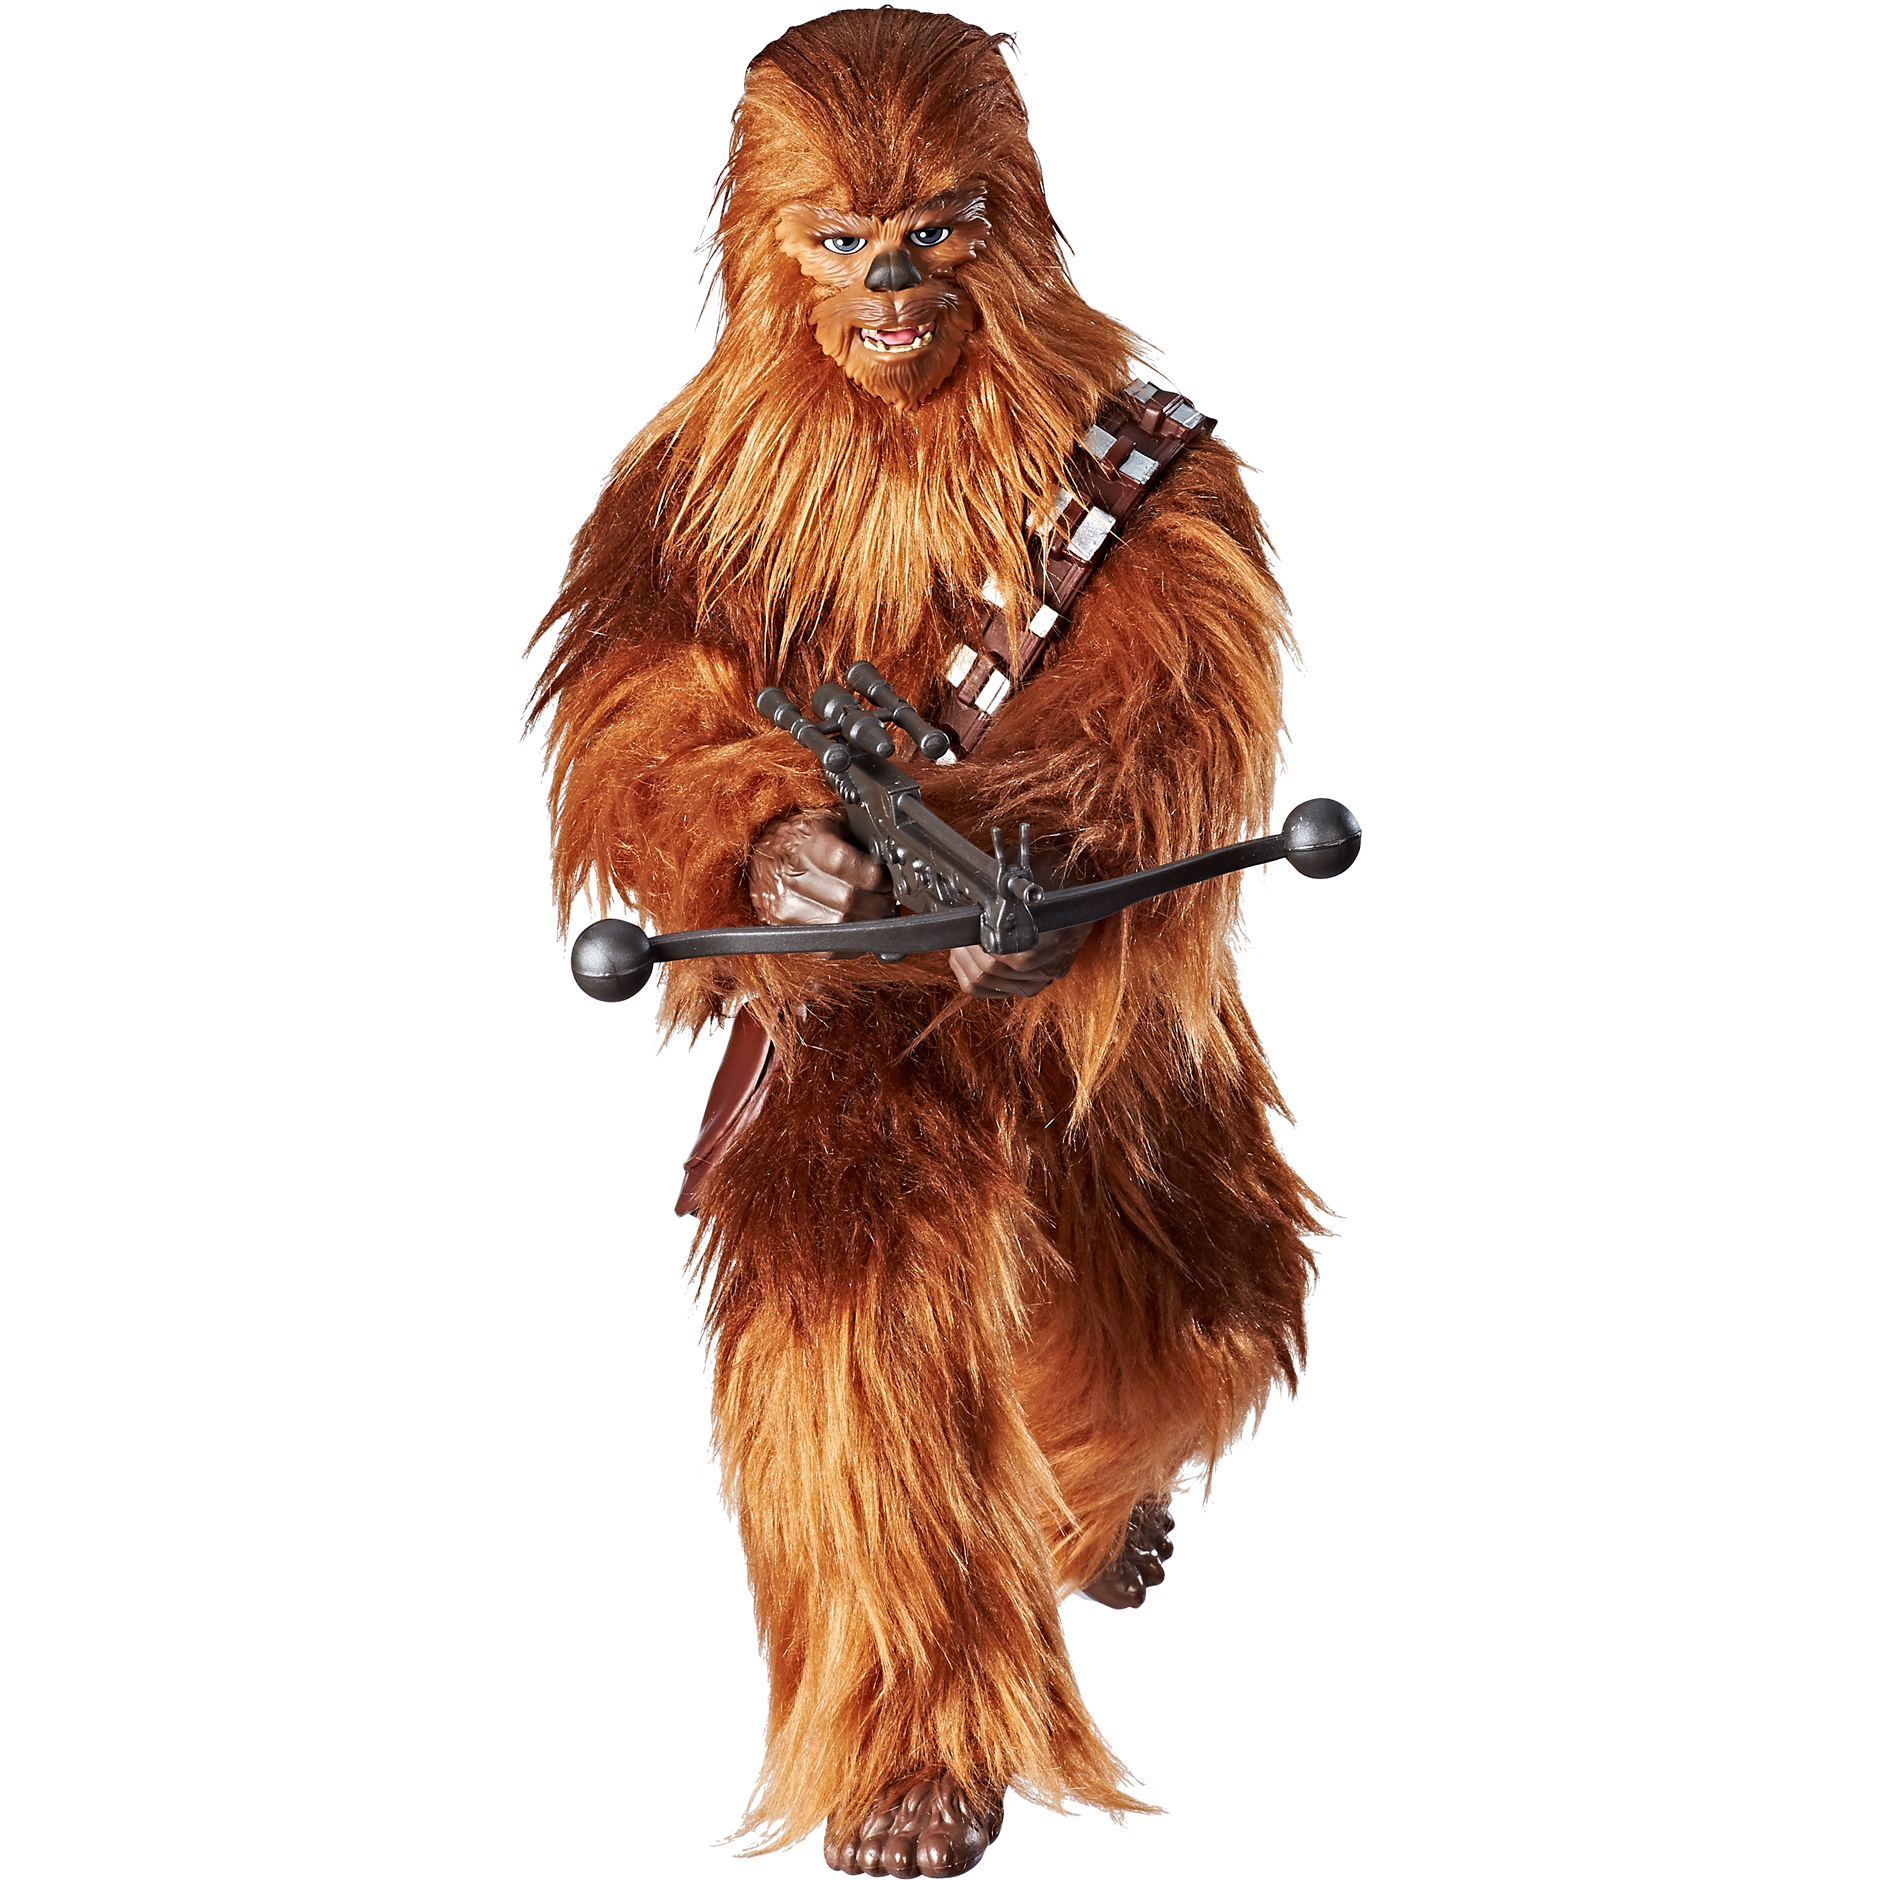 Star Wars Forces of Destiny Roaring Chewbacca Adventure Figure